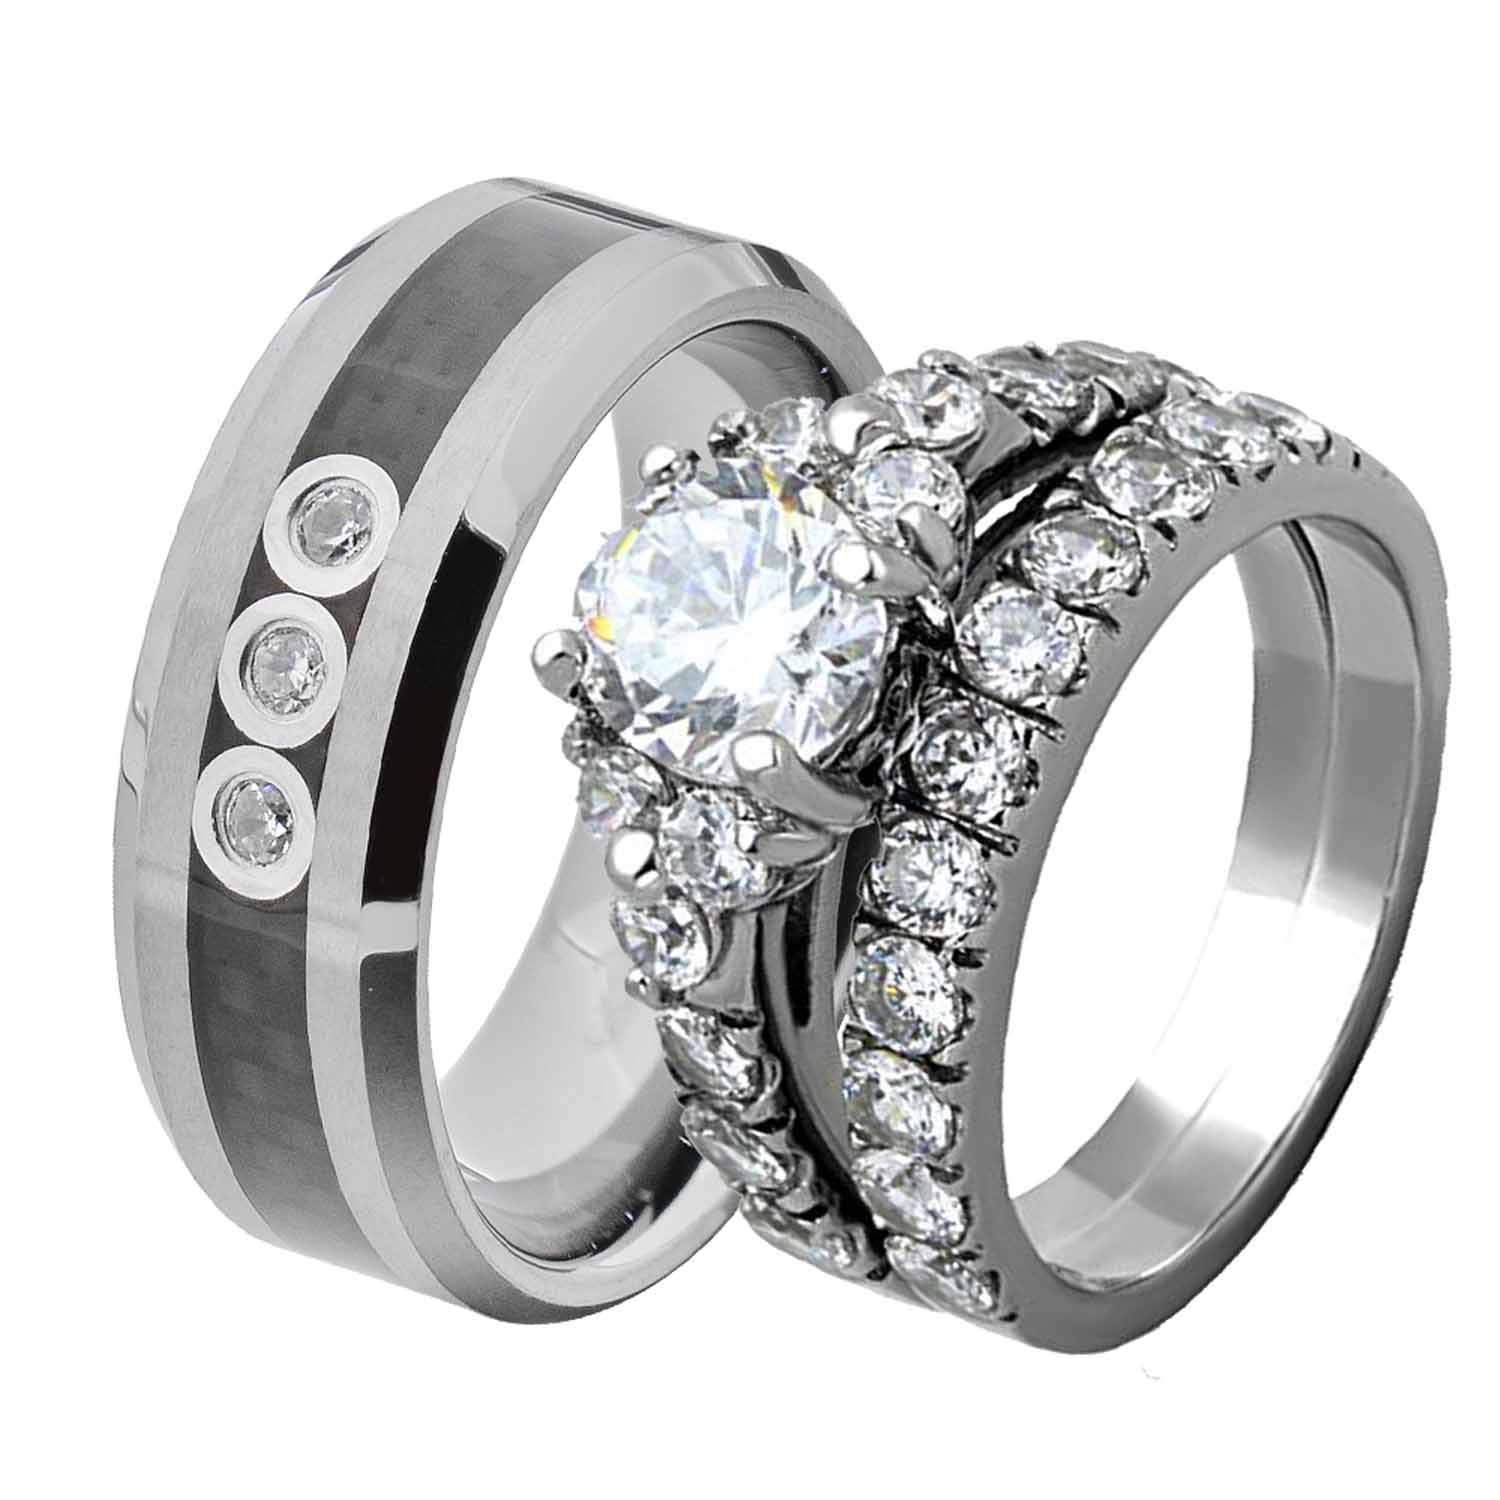 Flamereflection His And Hers Wedding Ring Sets Couple Bridal Women Stainless Steel Round Cubic Zirconia Aaa Cz 2 Pcs Men Tungsten Carbide: Tungsten Wedding Band Sets For Women At Websimilar.org